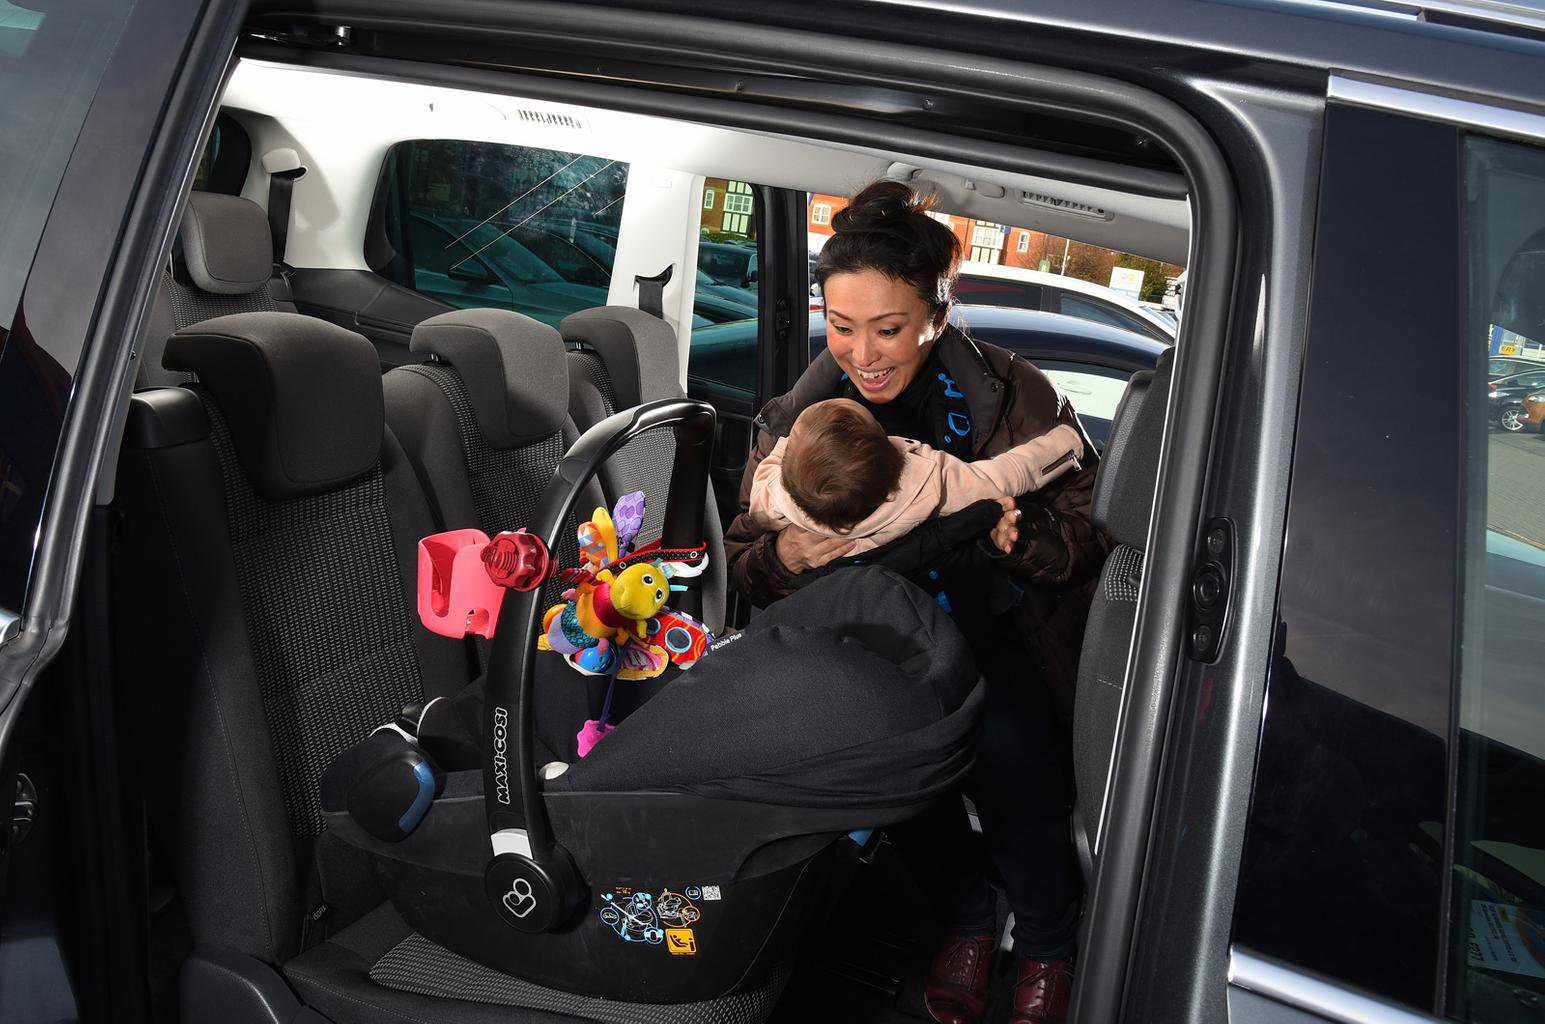 Lady putting baby into child car seat in car